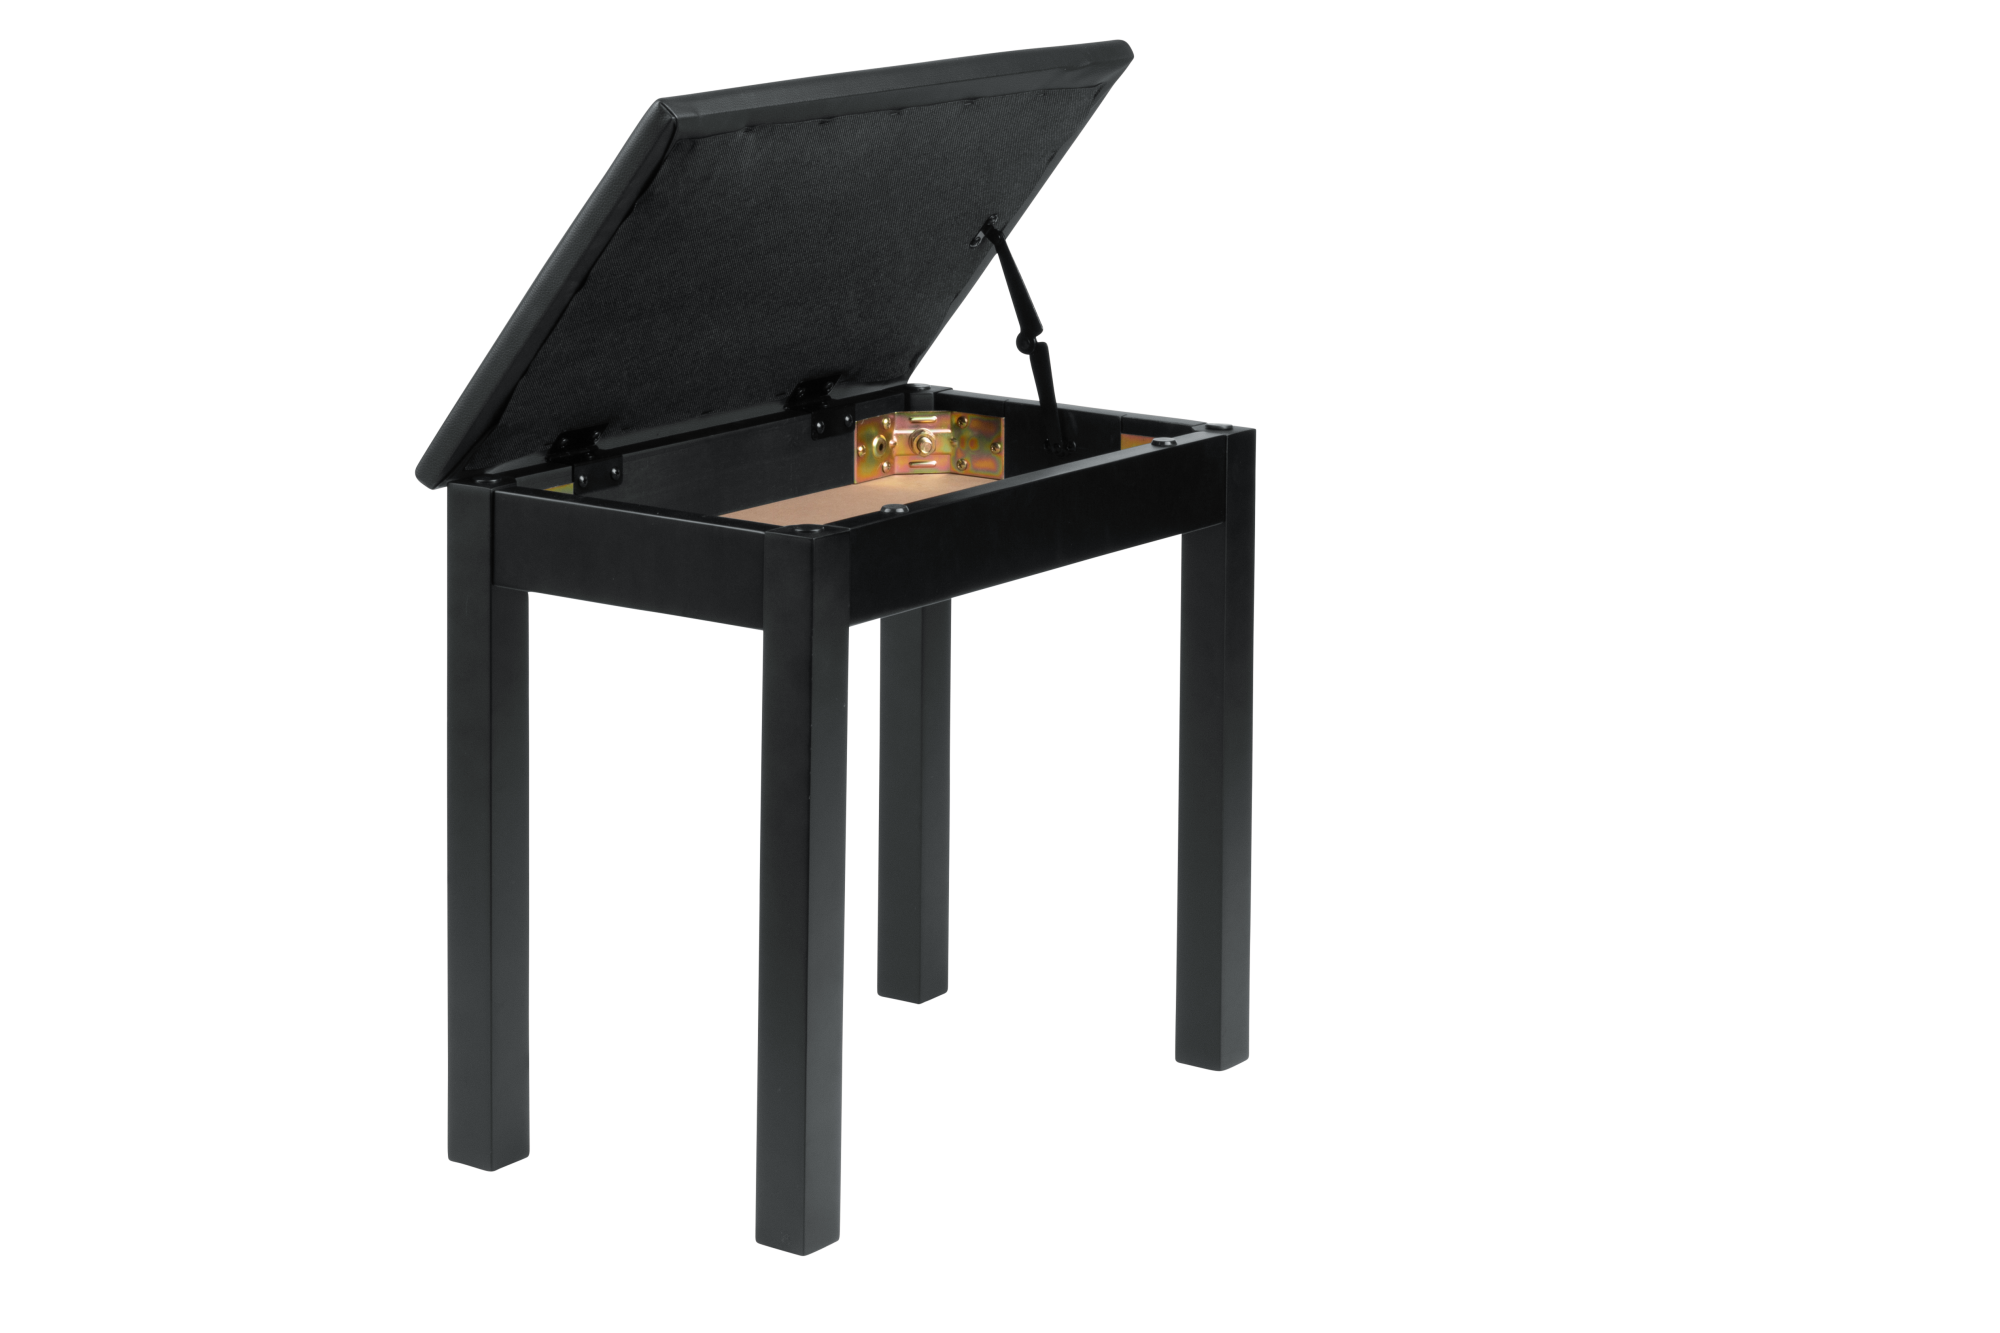 Frameworks GFW-KEYBENCH-WDBKS Deluxe Wooden Keyboard & Piano Bench with Flip-Up Storage Compartment – Black Color